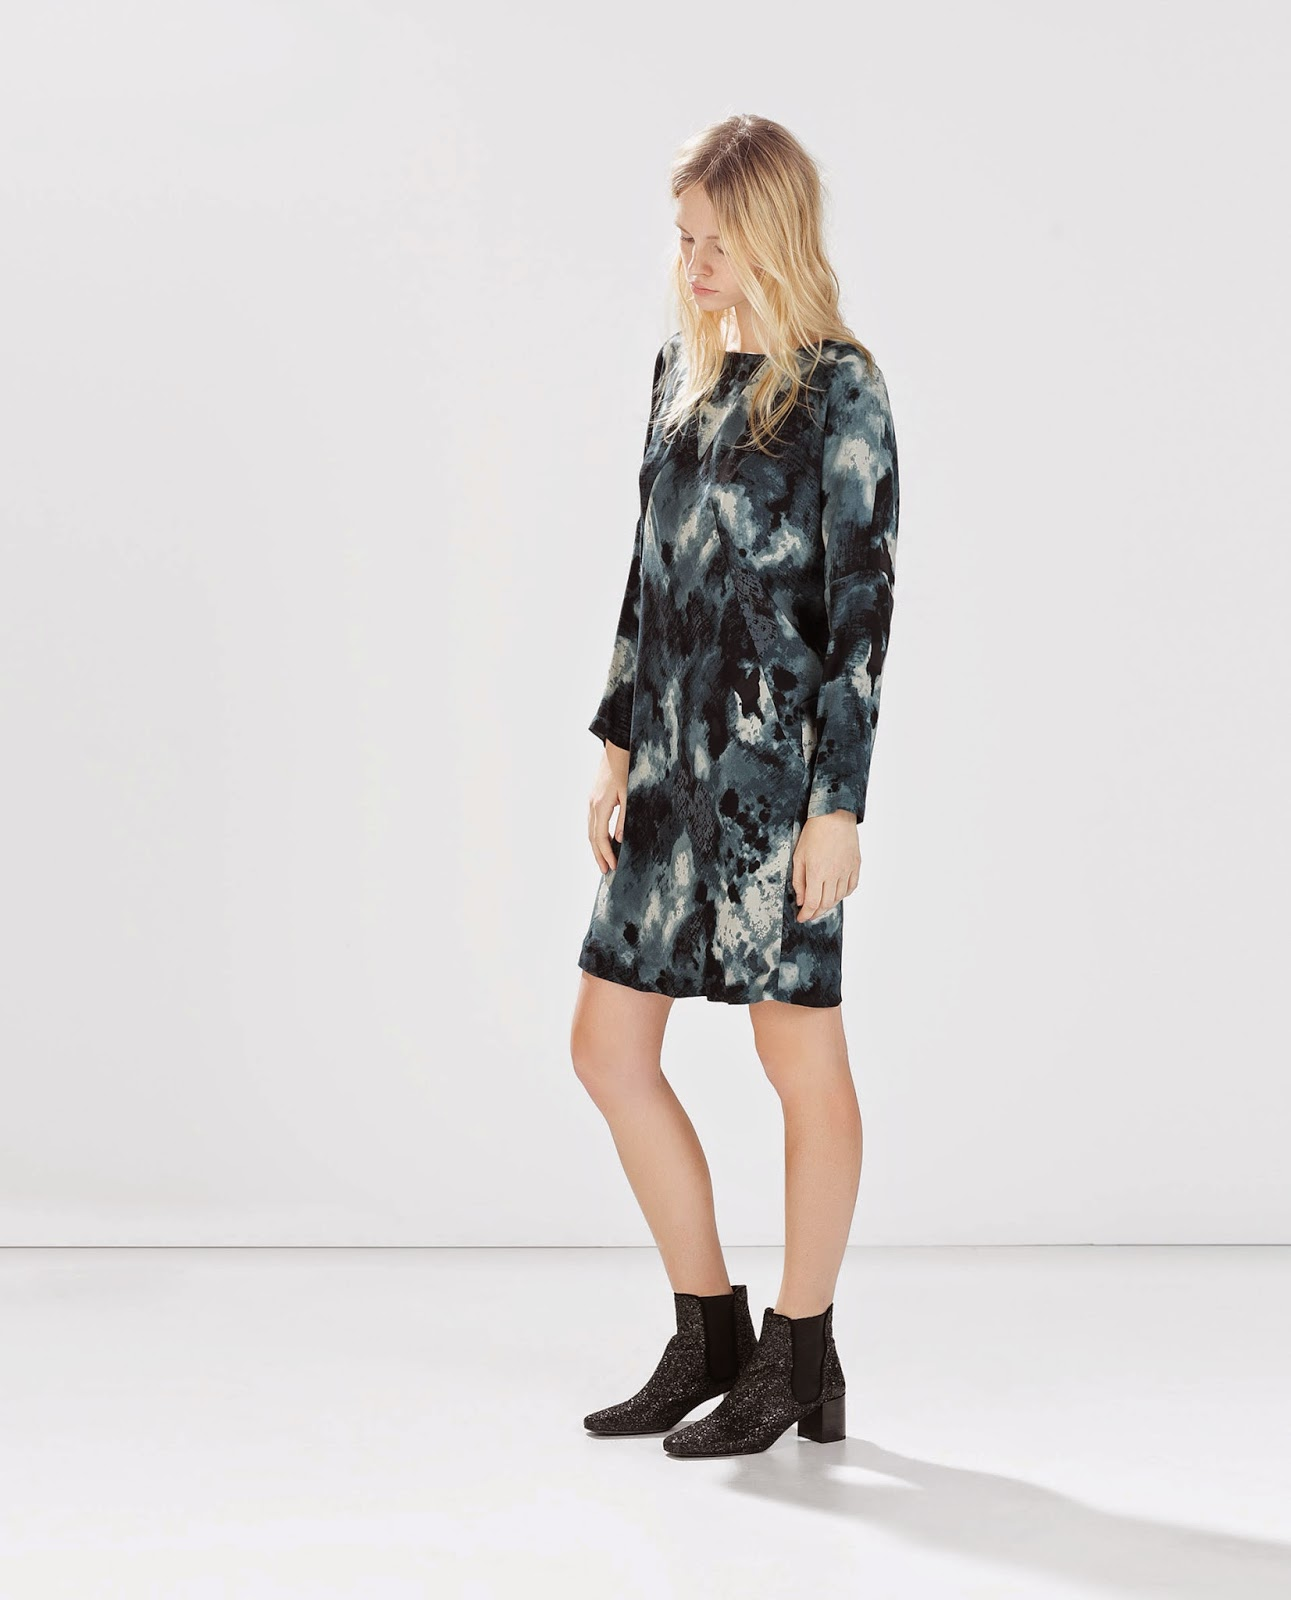 zara teal print dress